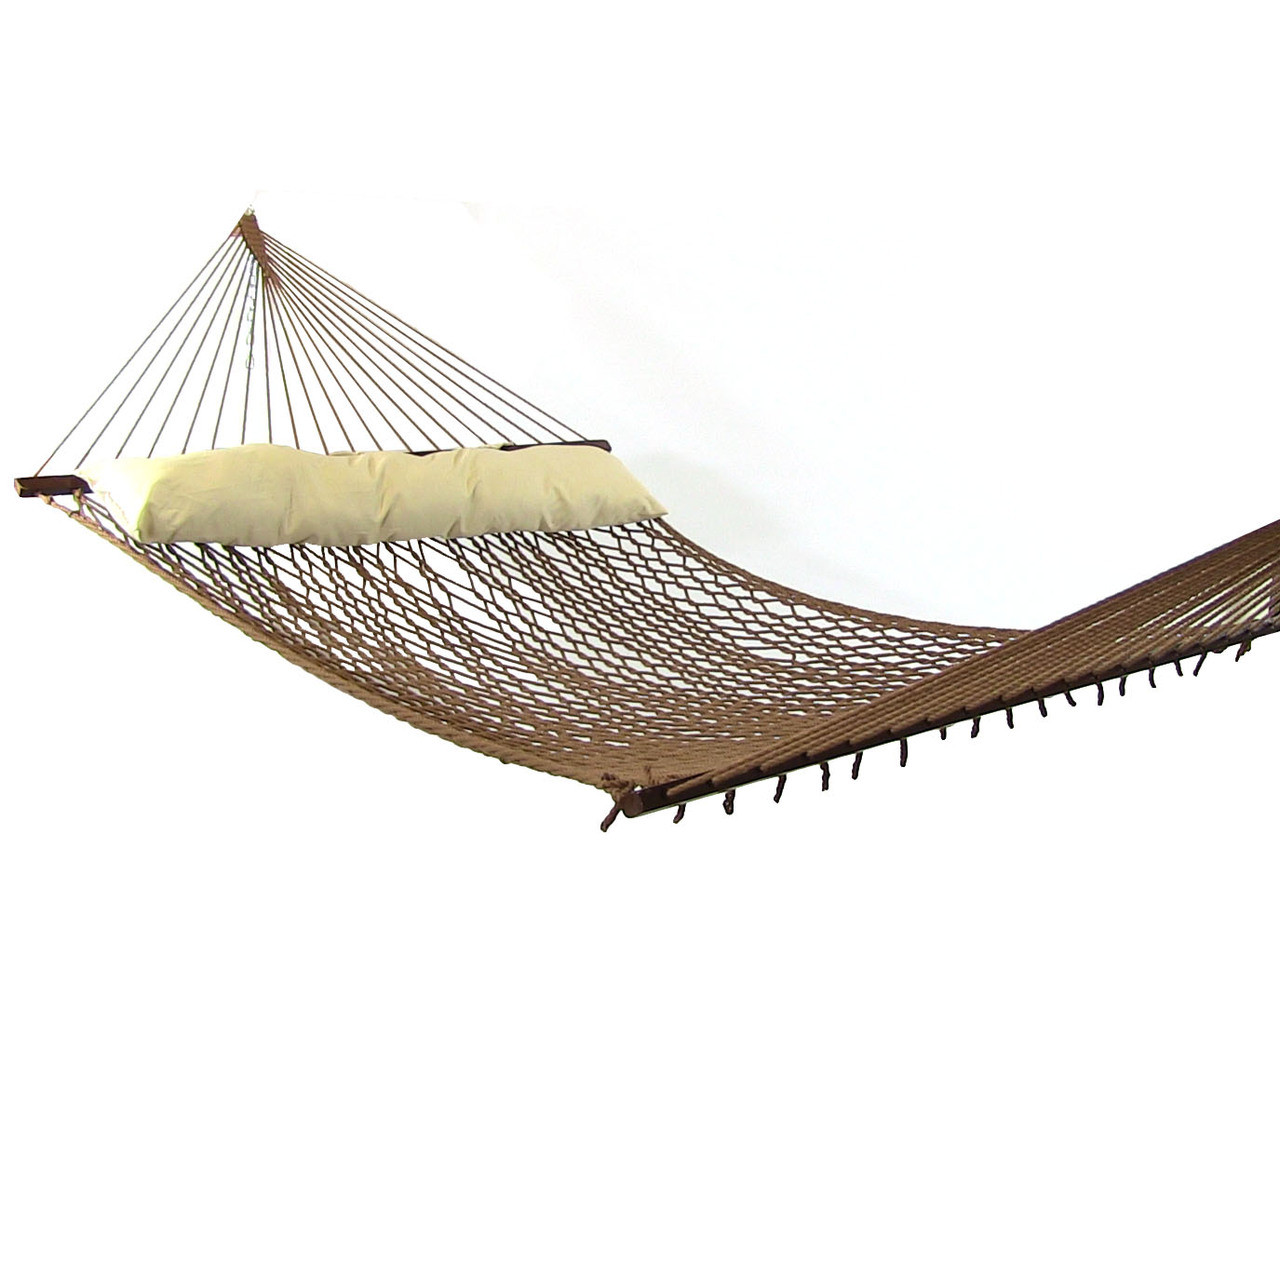 Sunnydaze Polyester Rope Hammock Spreader Bars Pillow Inch Photo